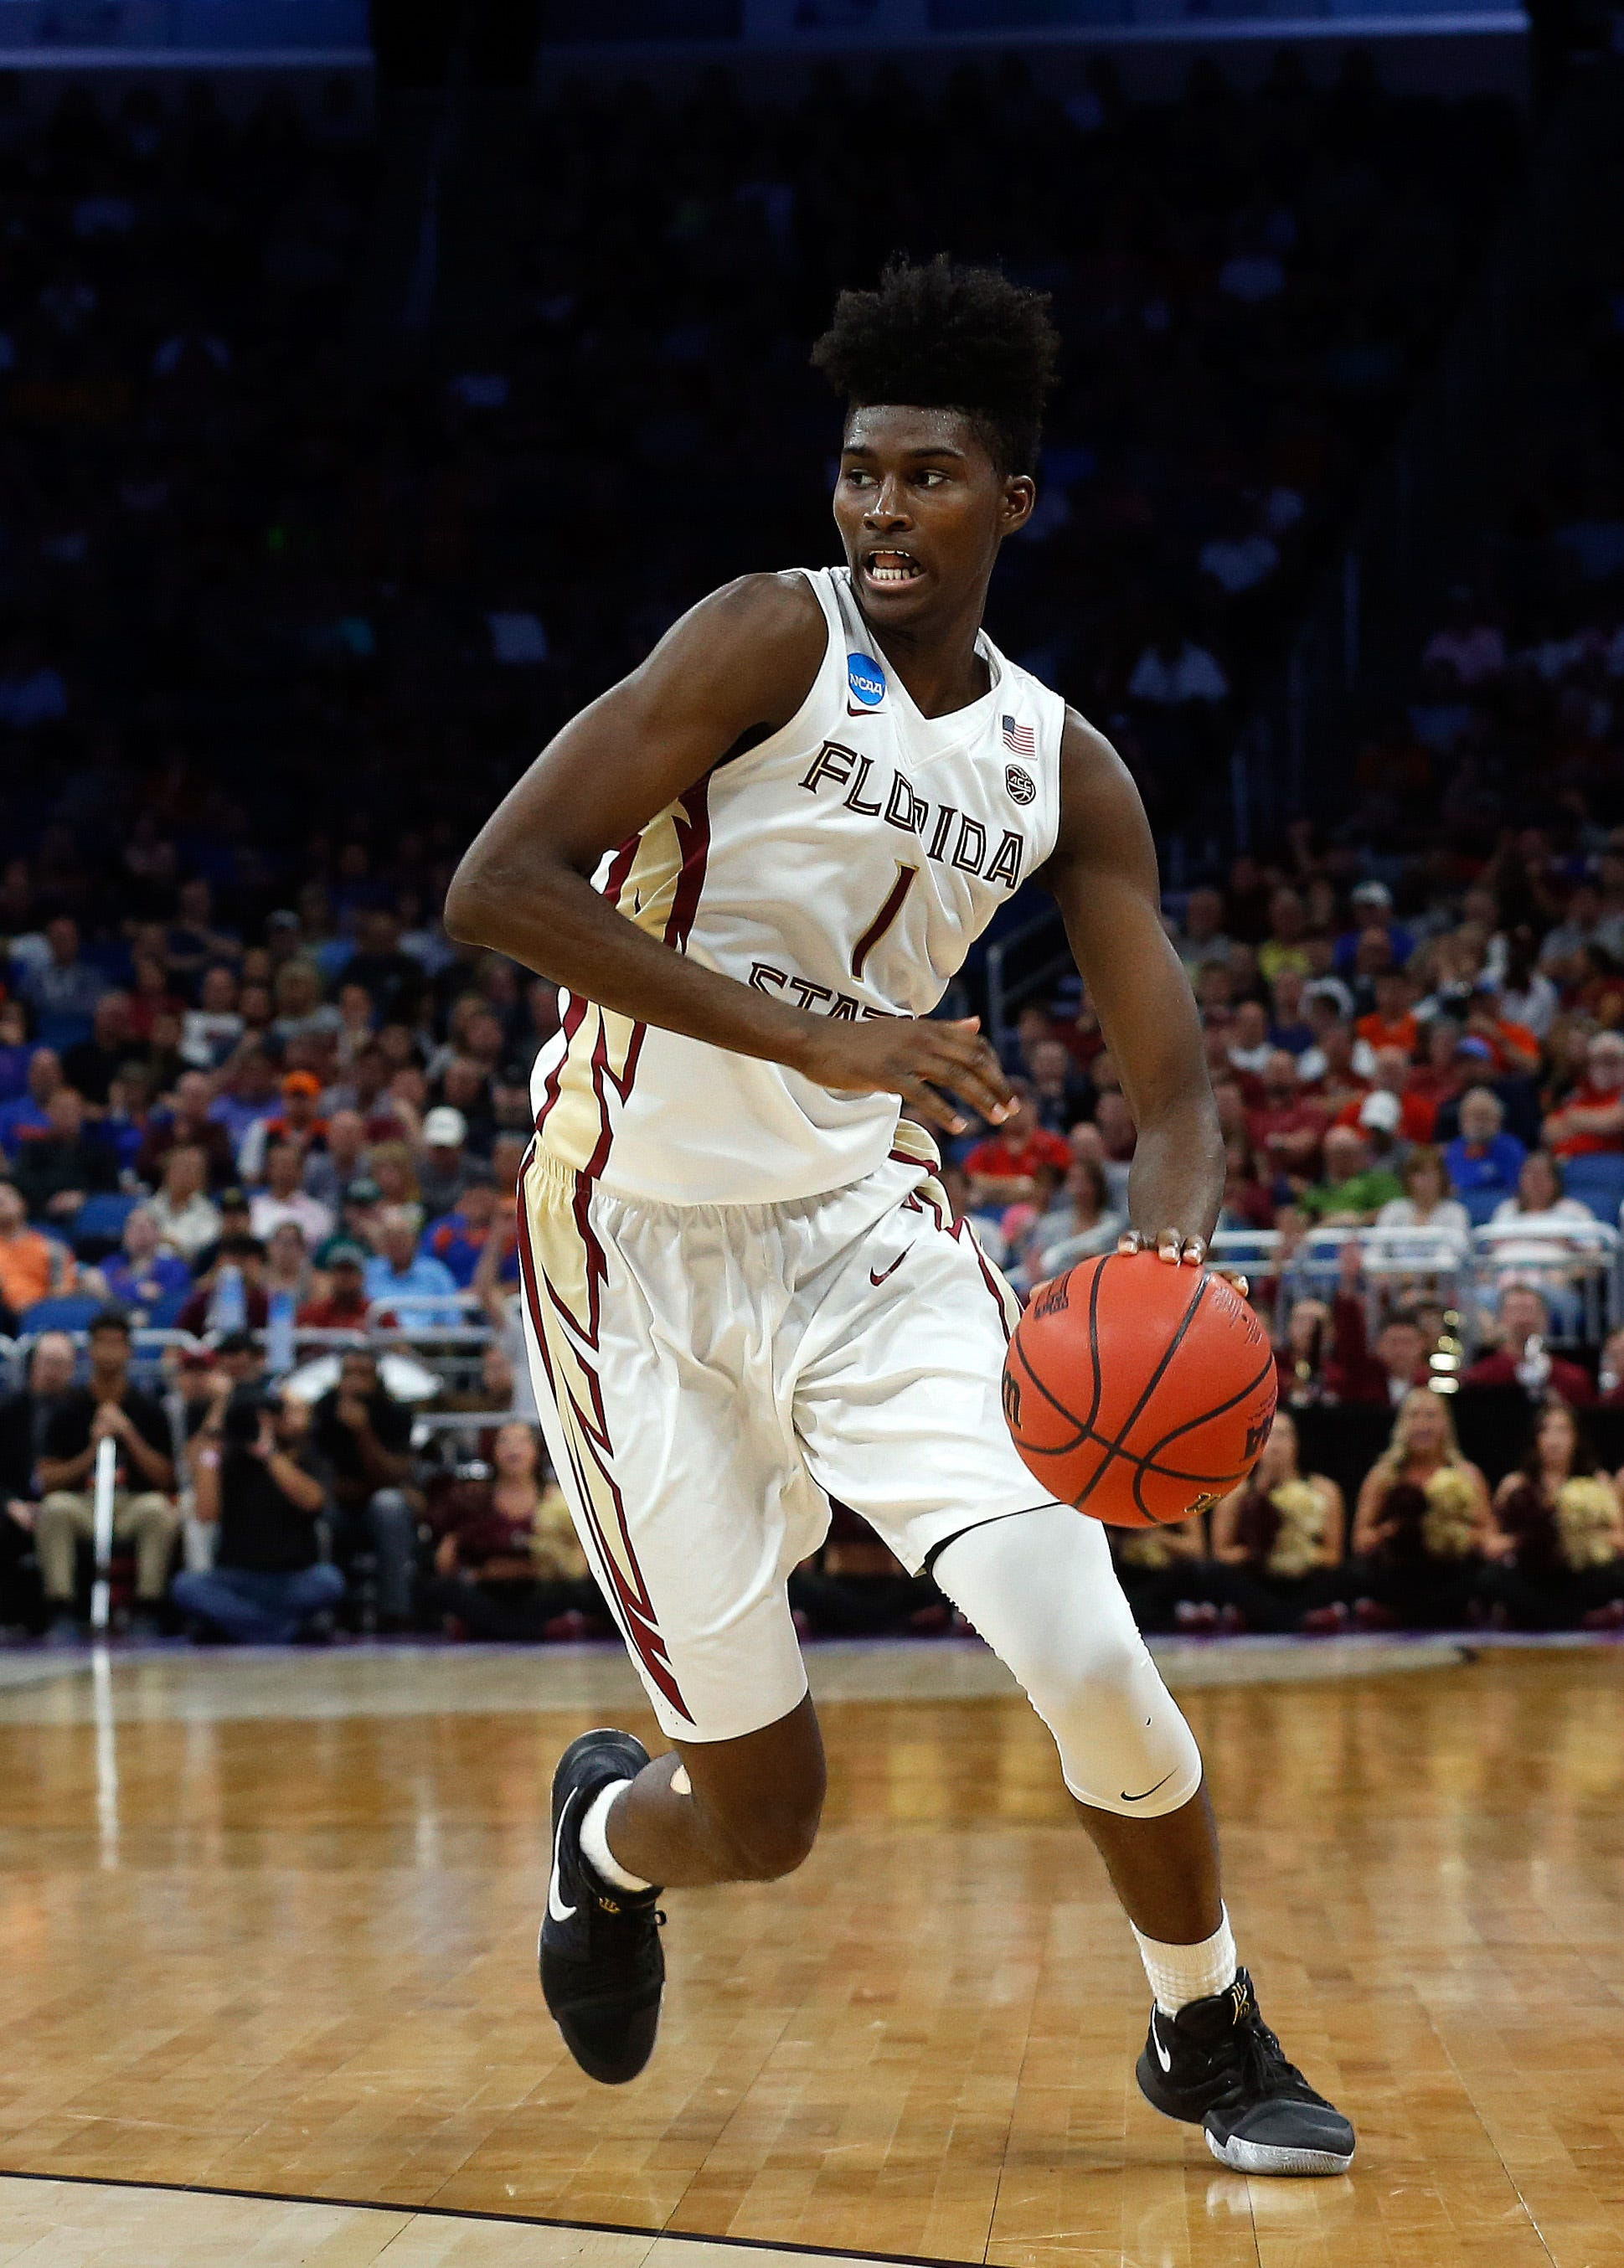 Florida State's Jonathan Isaac visits with Suns, Gonzaga's Zach Collins set for Tuesday workout